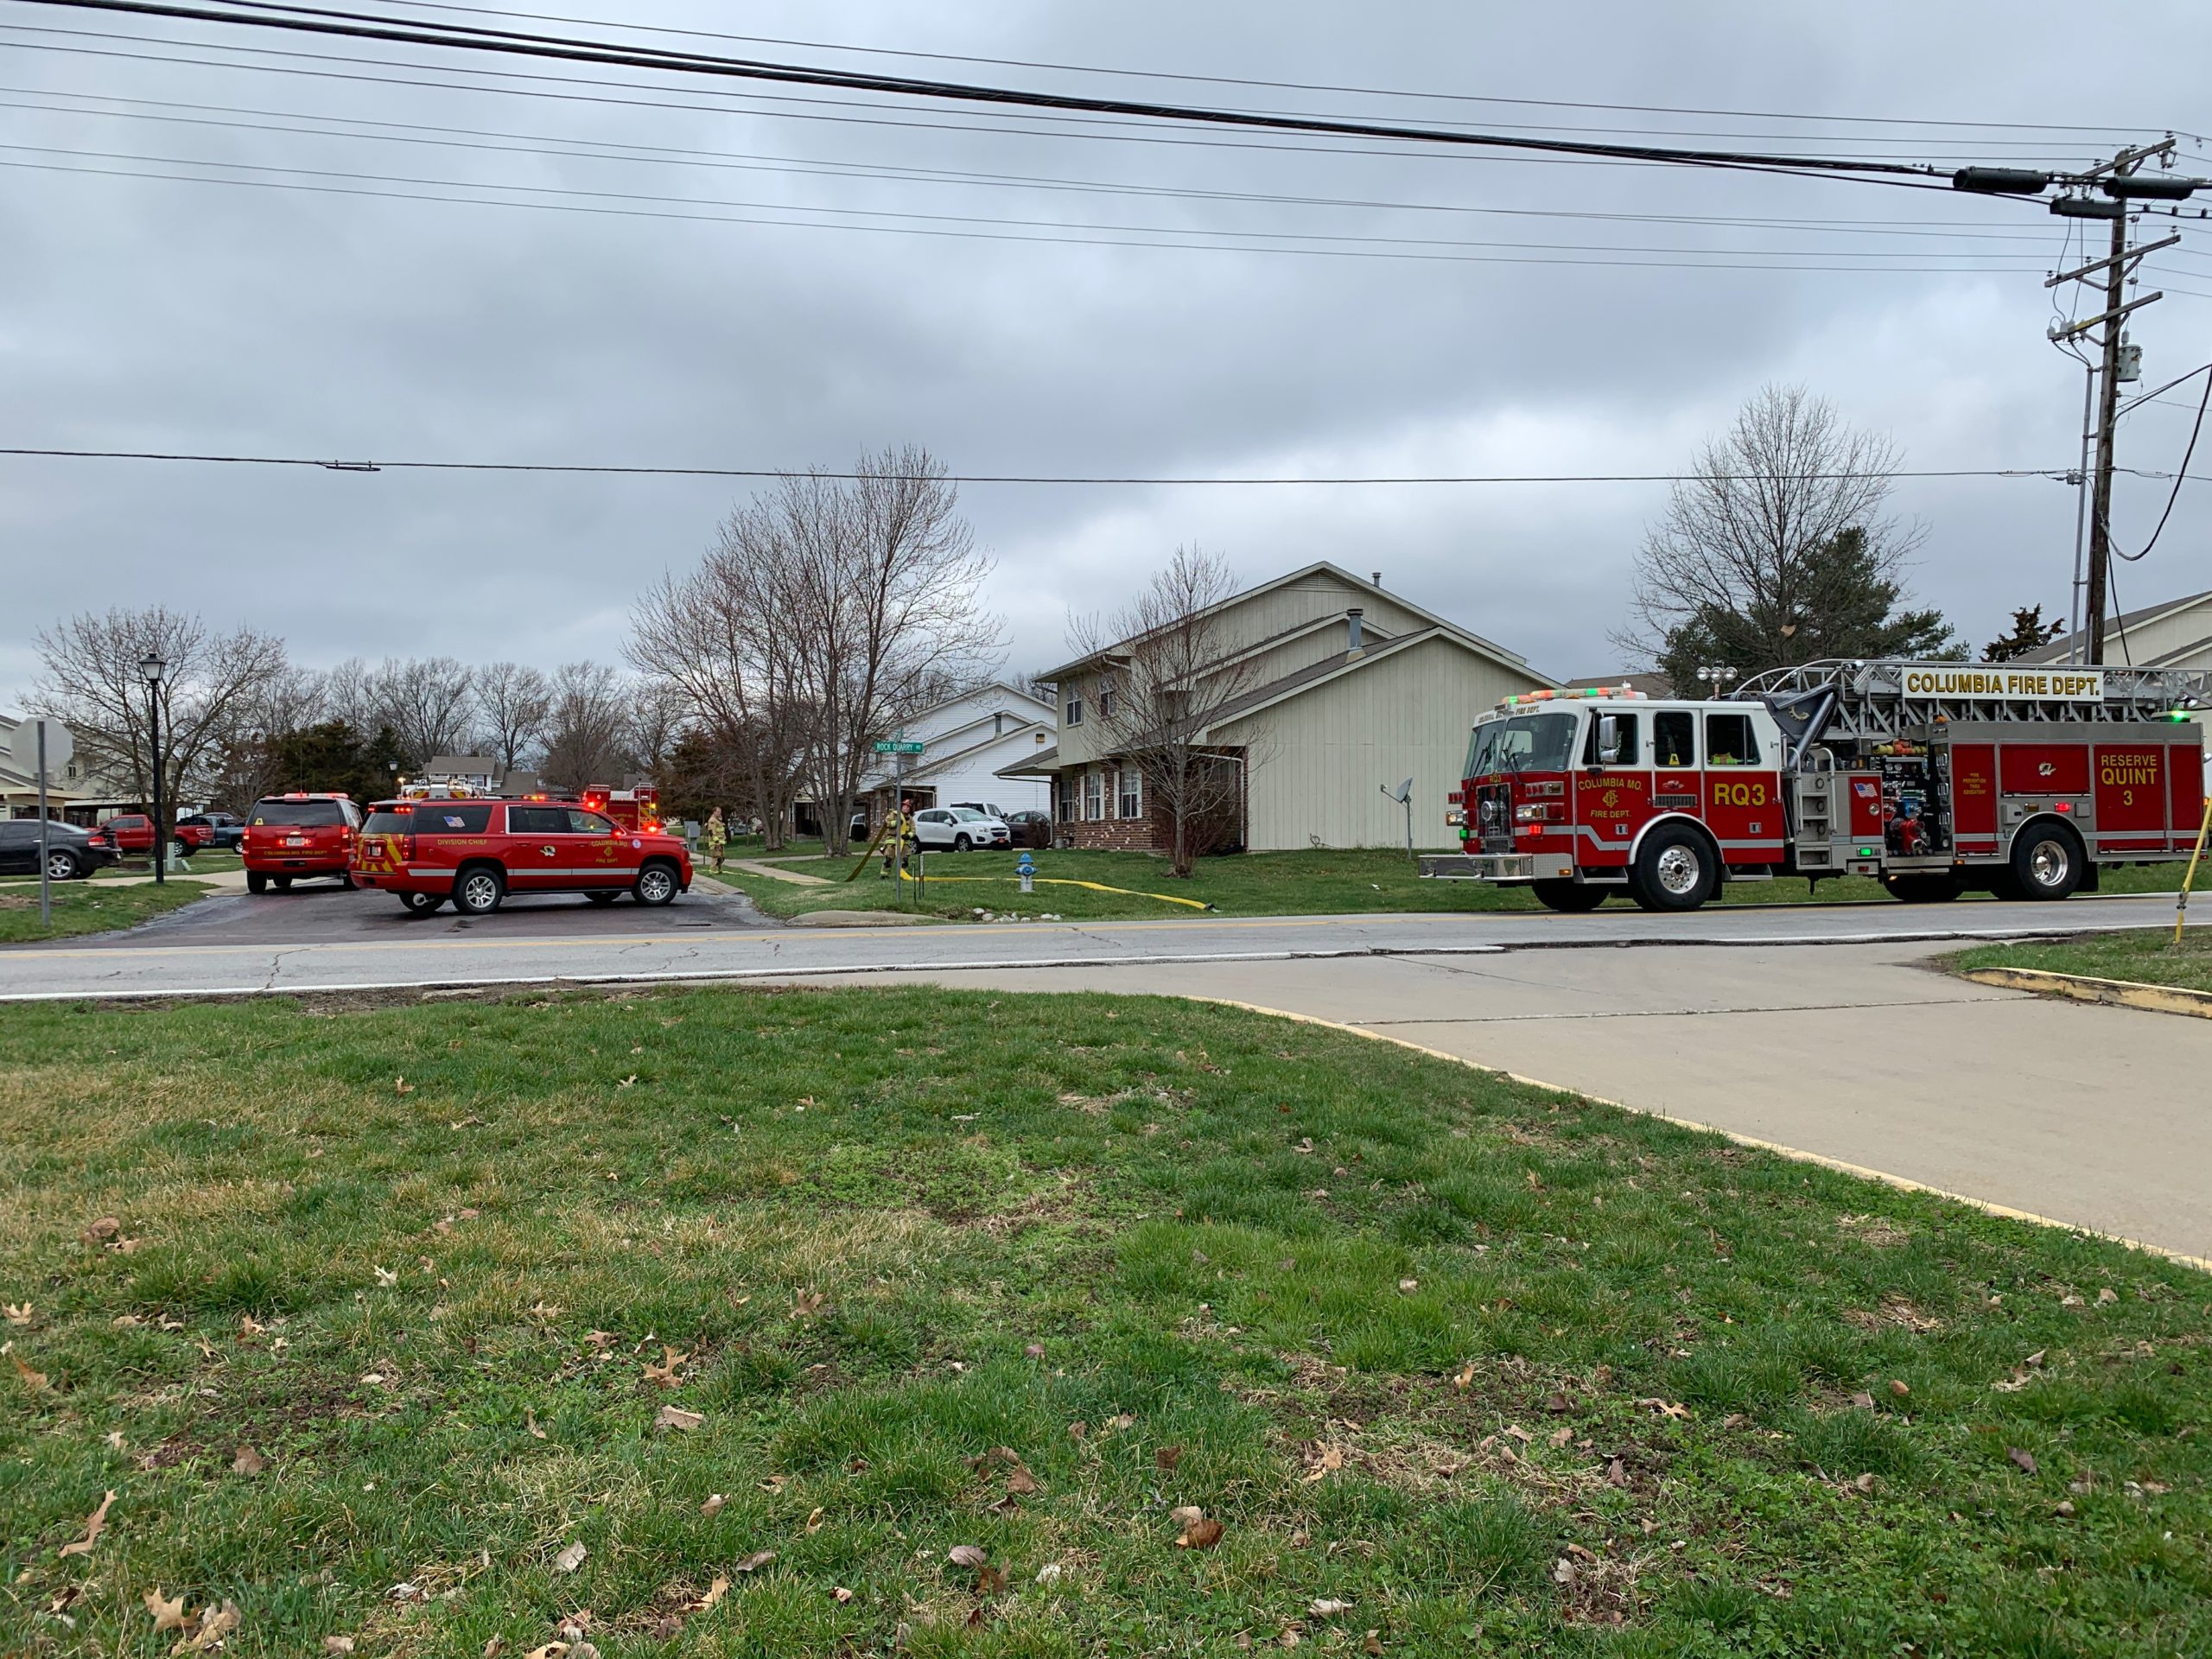 Firefighters respond to call about a fire on Telluride Ln.